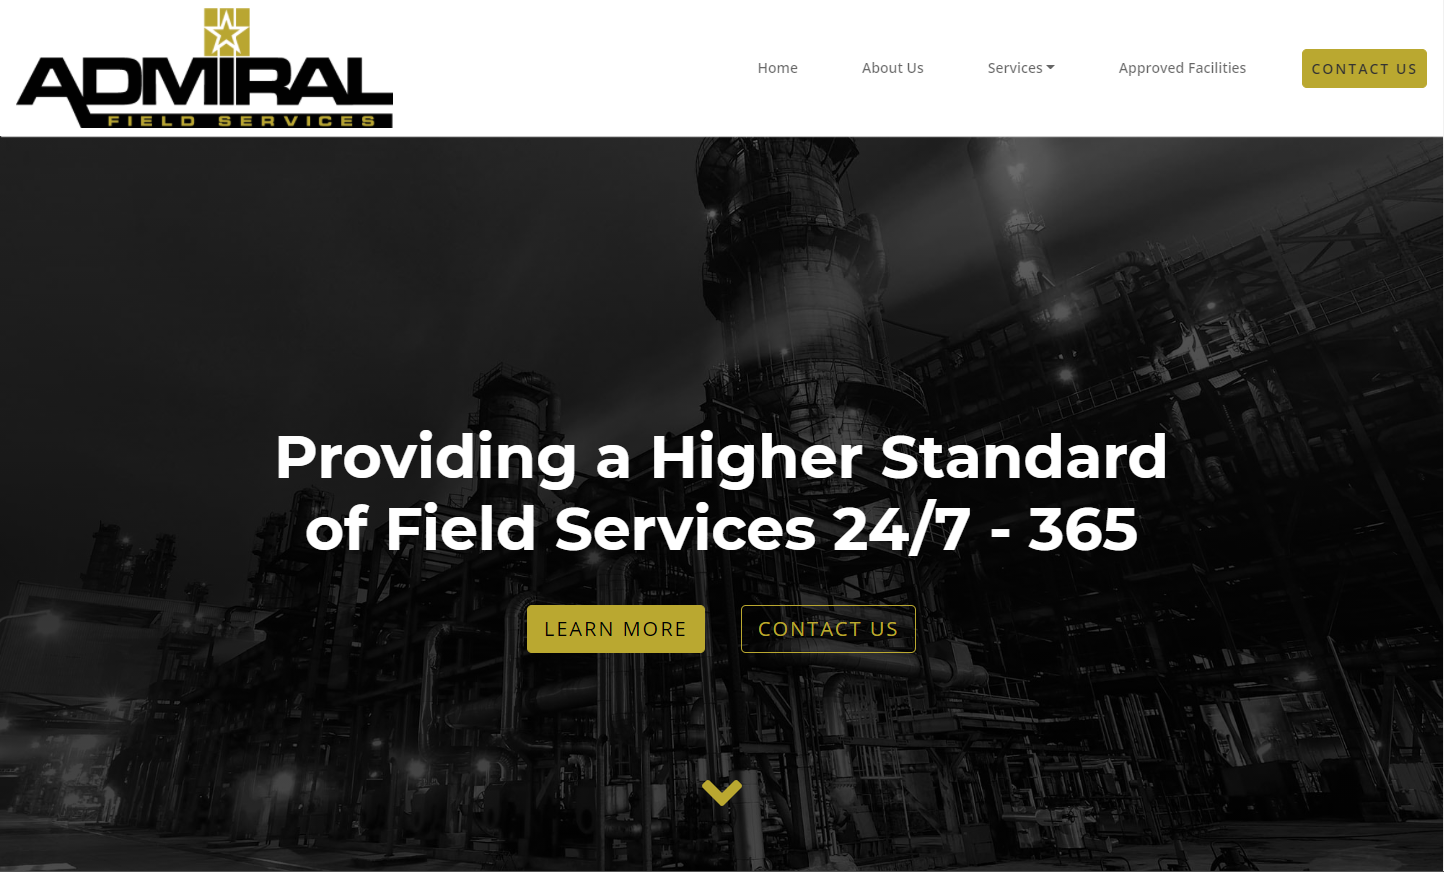 Admiral Field Services Website